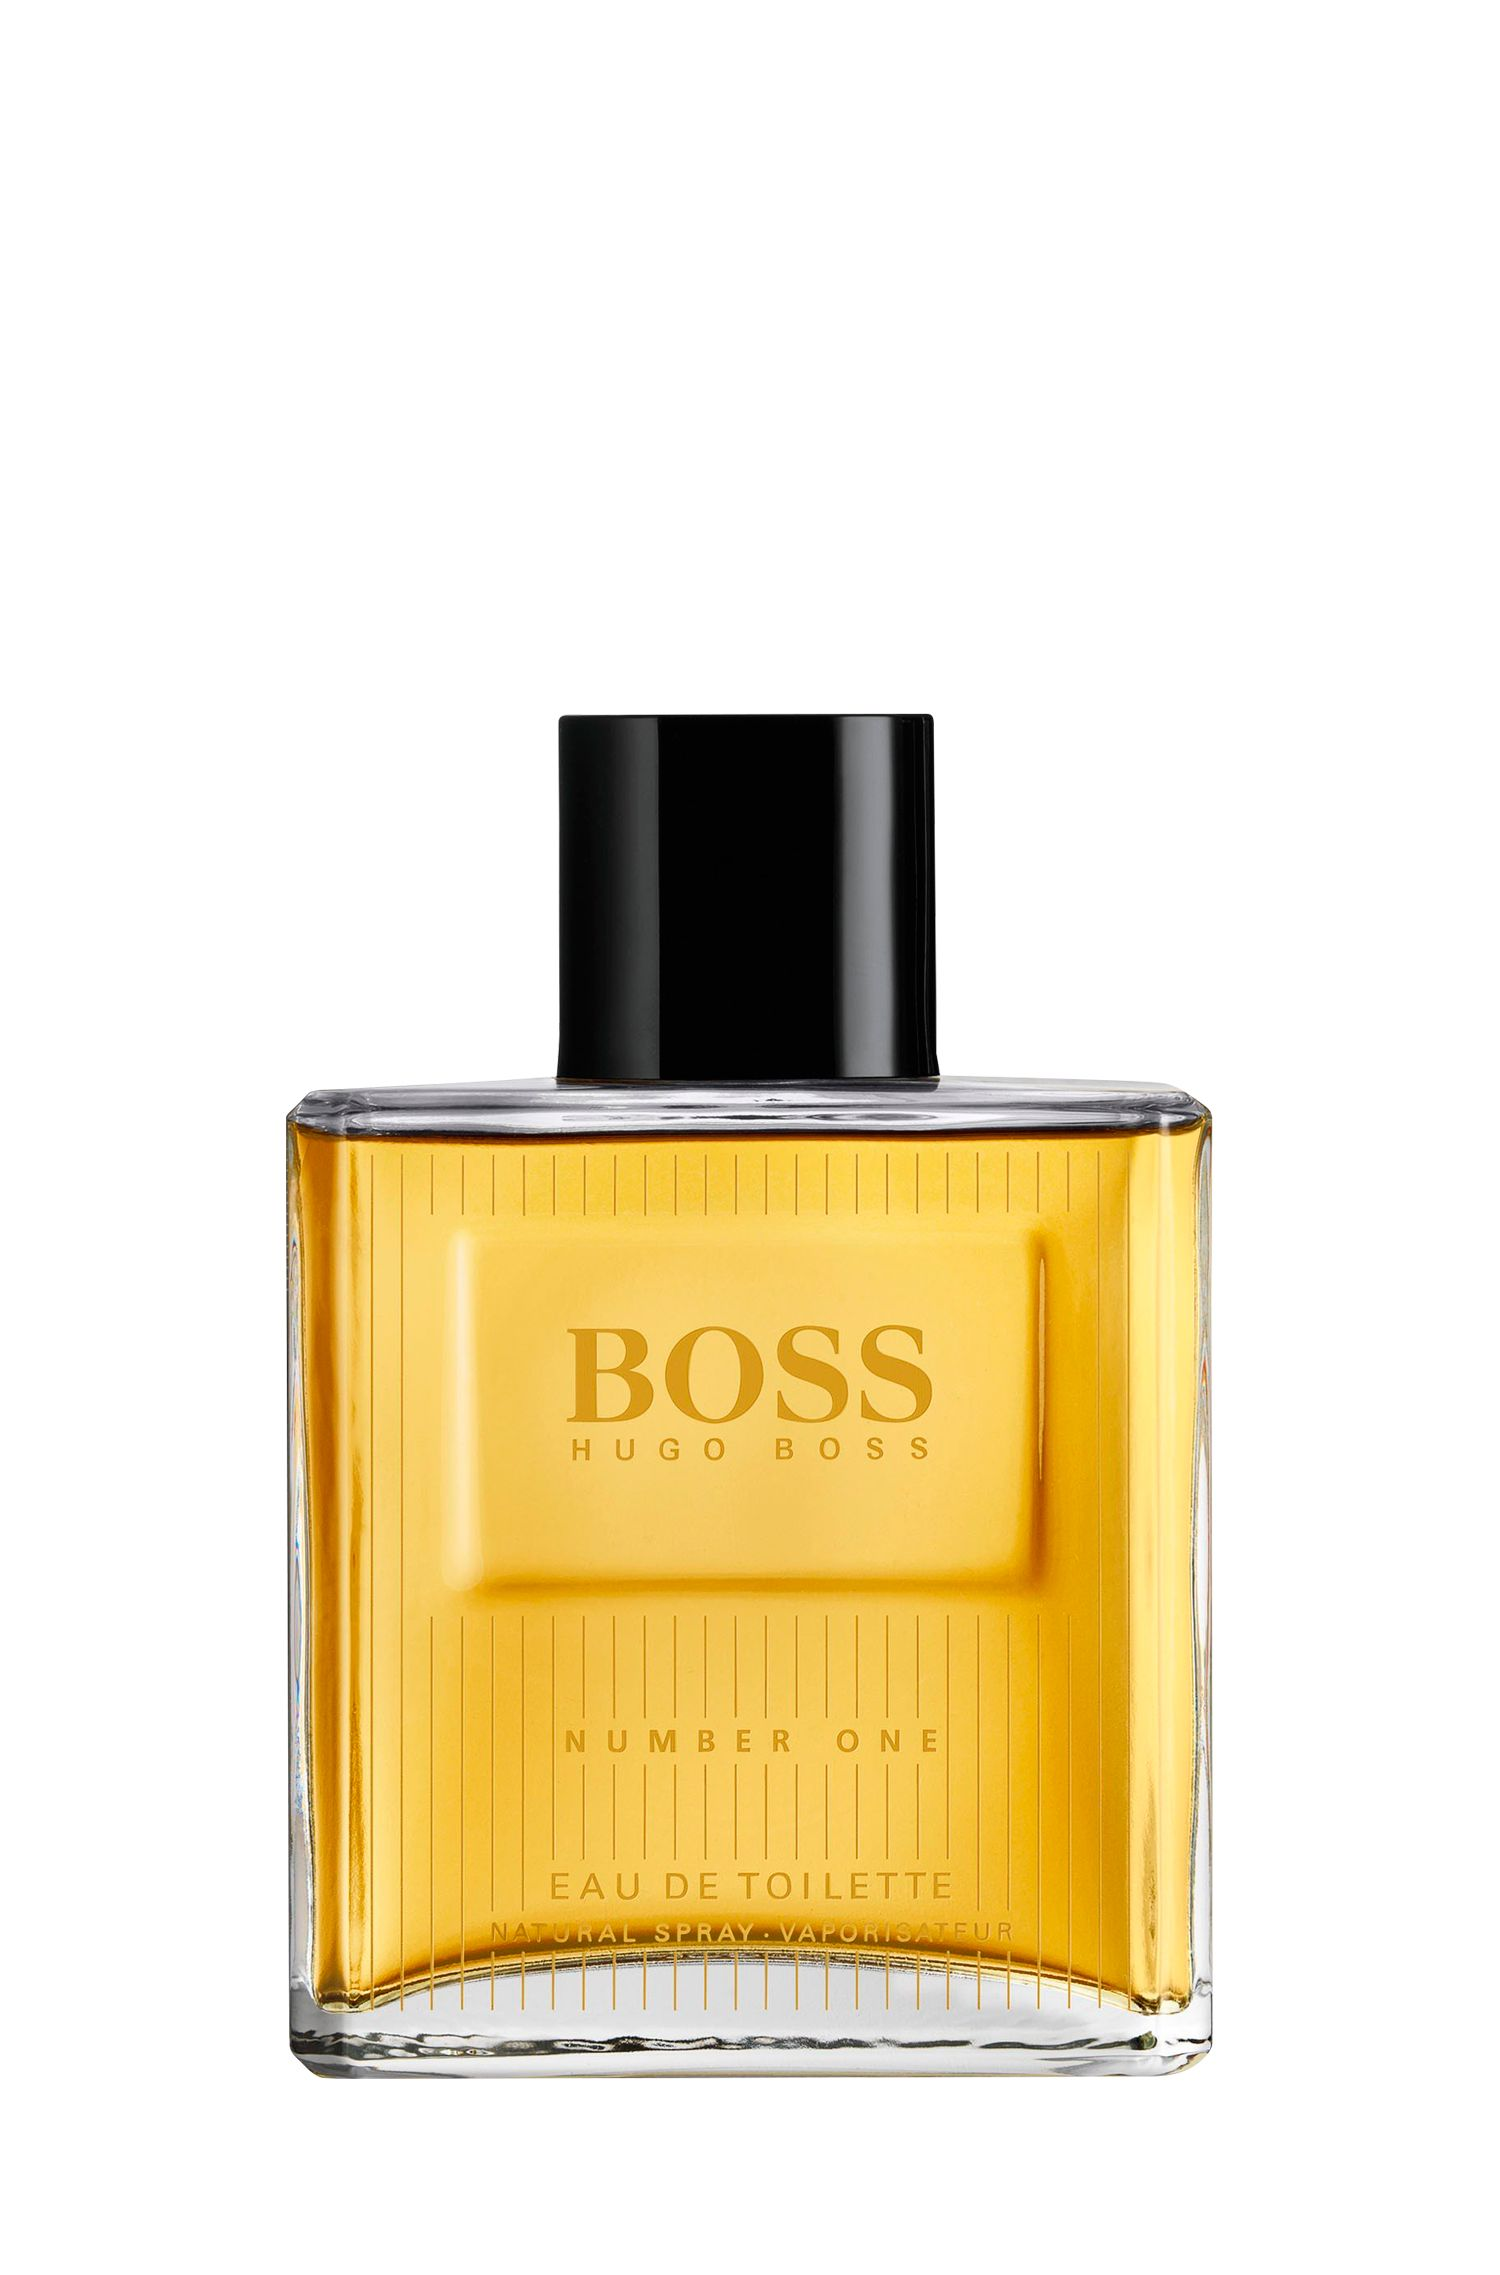 Eau de toilette BOSS Number One 125 ml